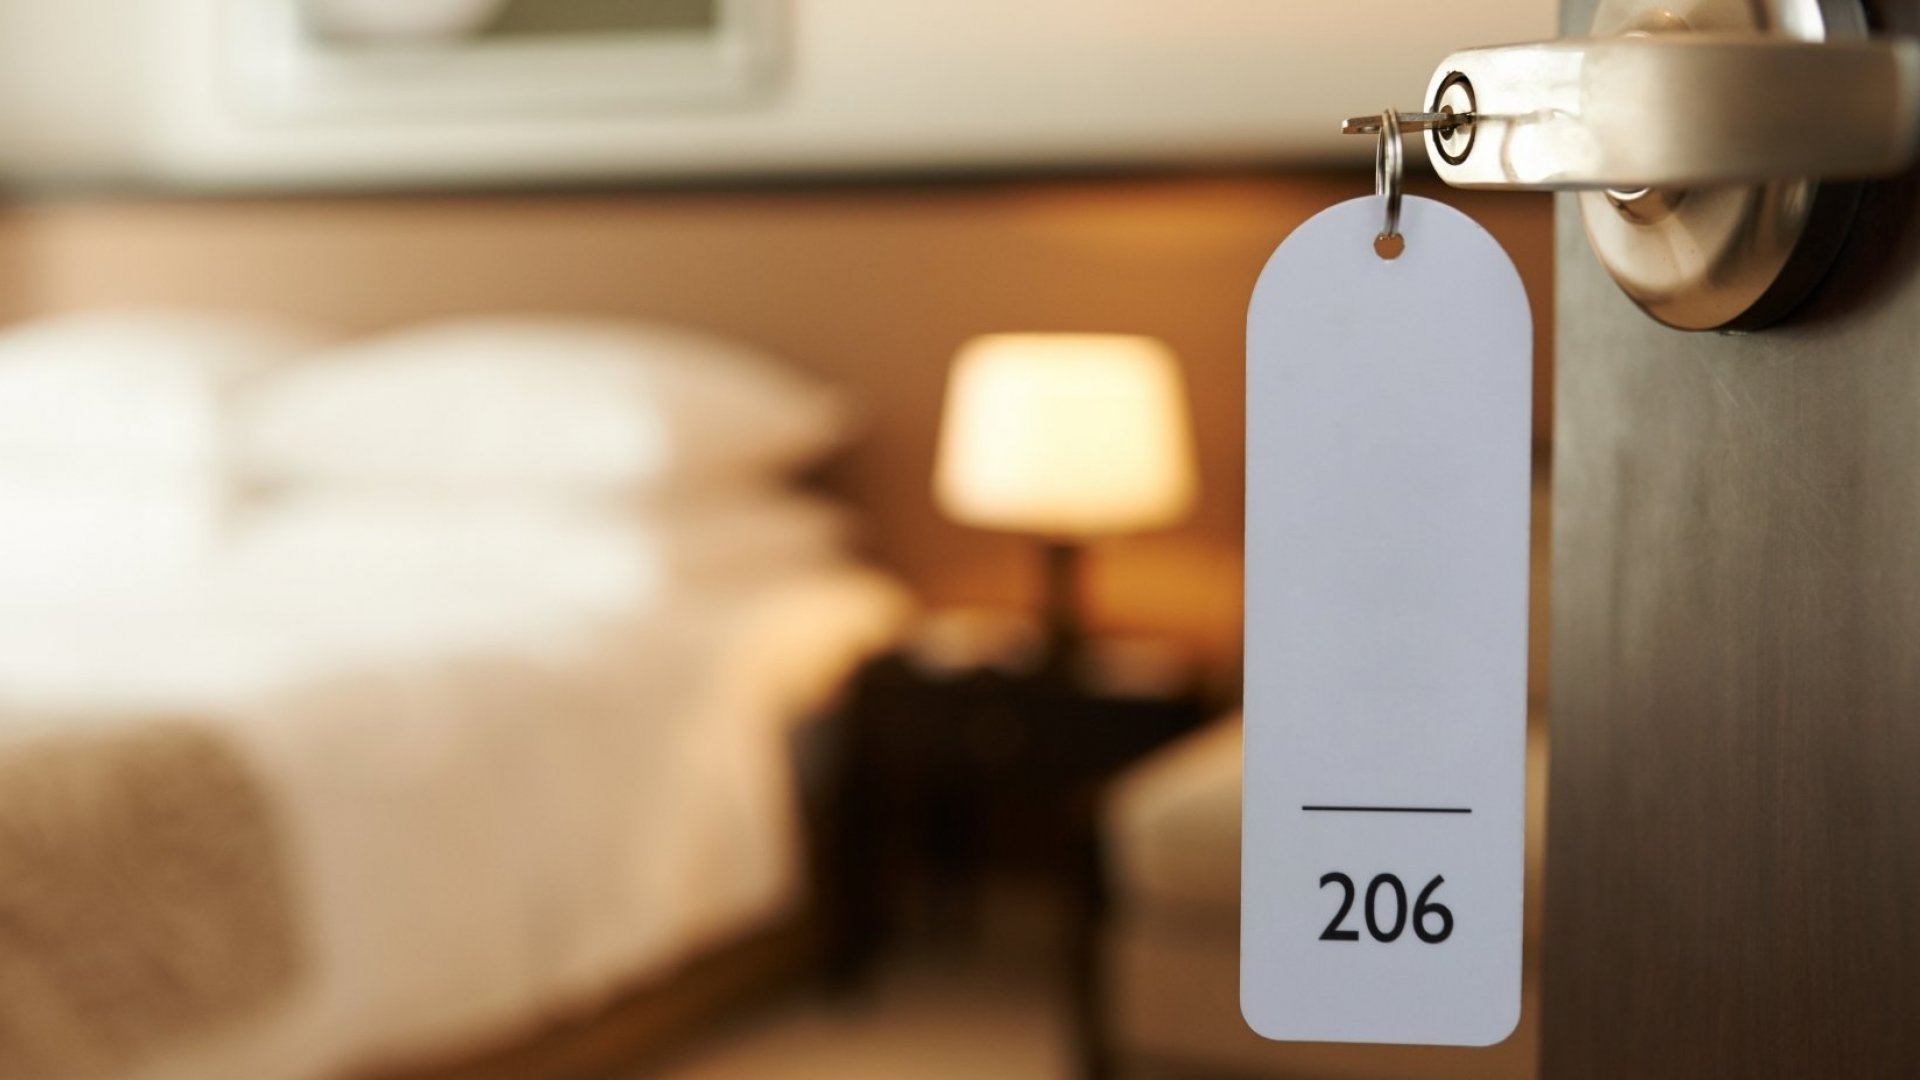 Scientists Found Something Absolutely Stomach-Turning in These Hotel Rooms